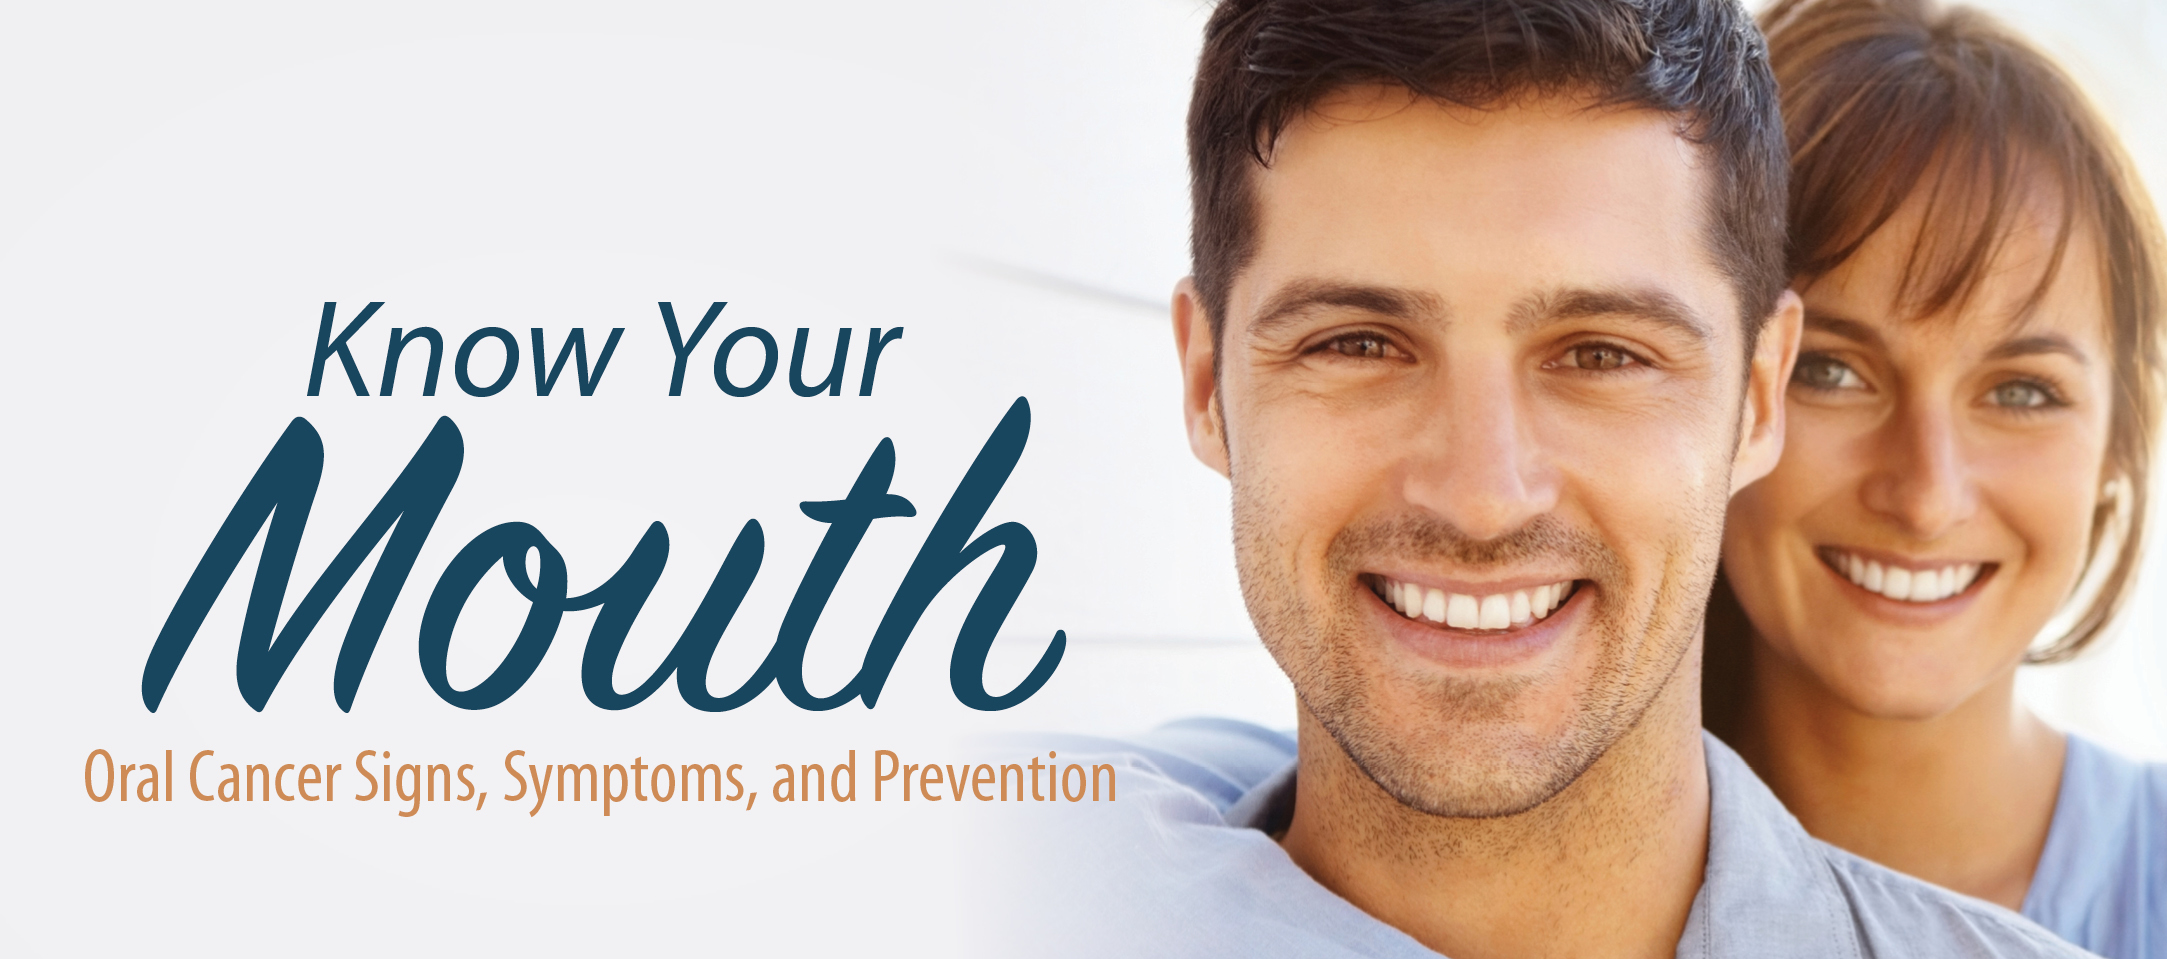 Oral Cancer Signs Symptoms and Prevention | Dental Blog